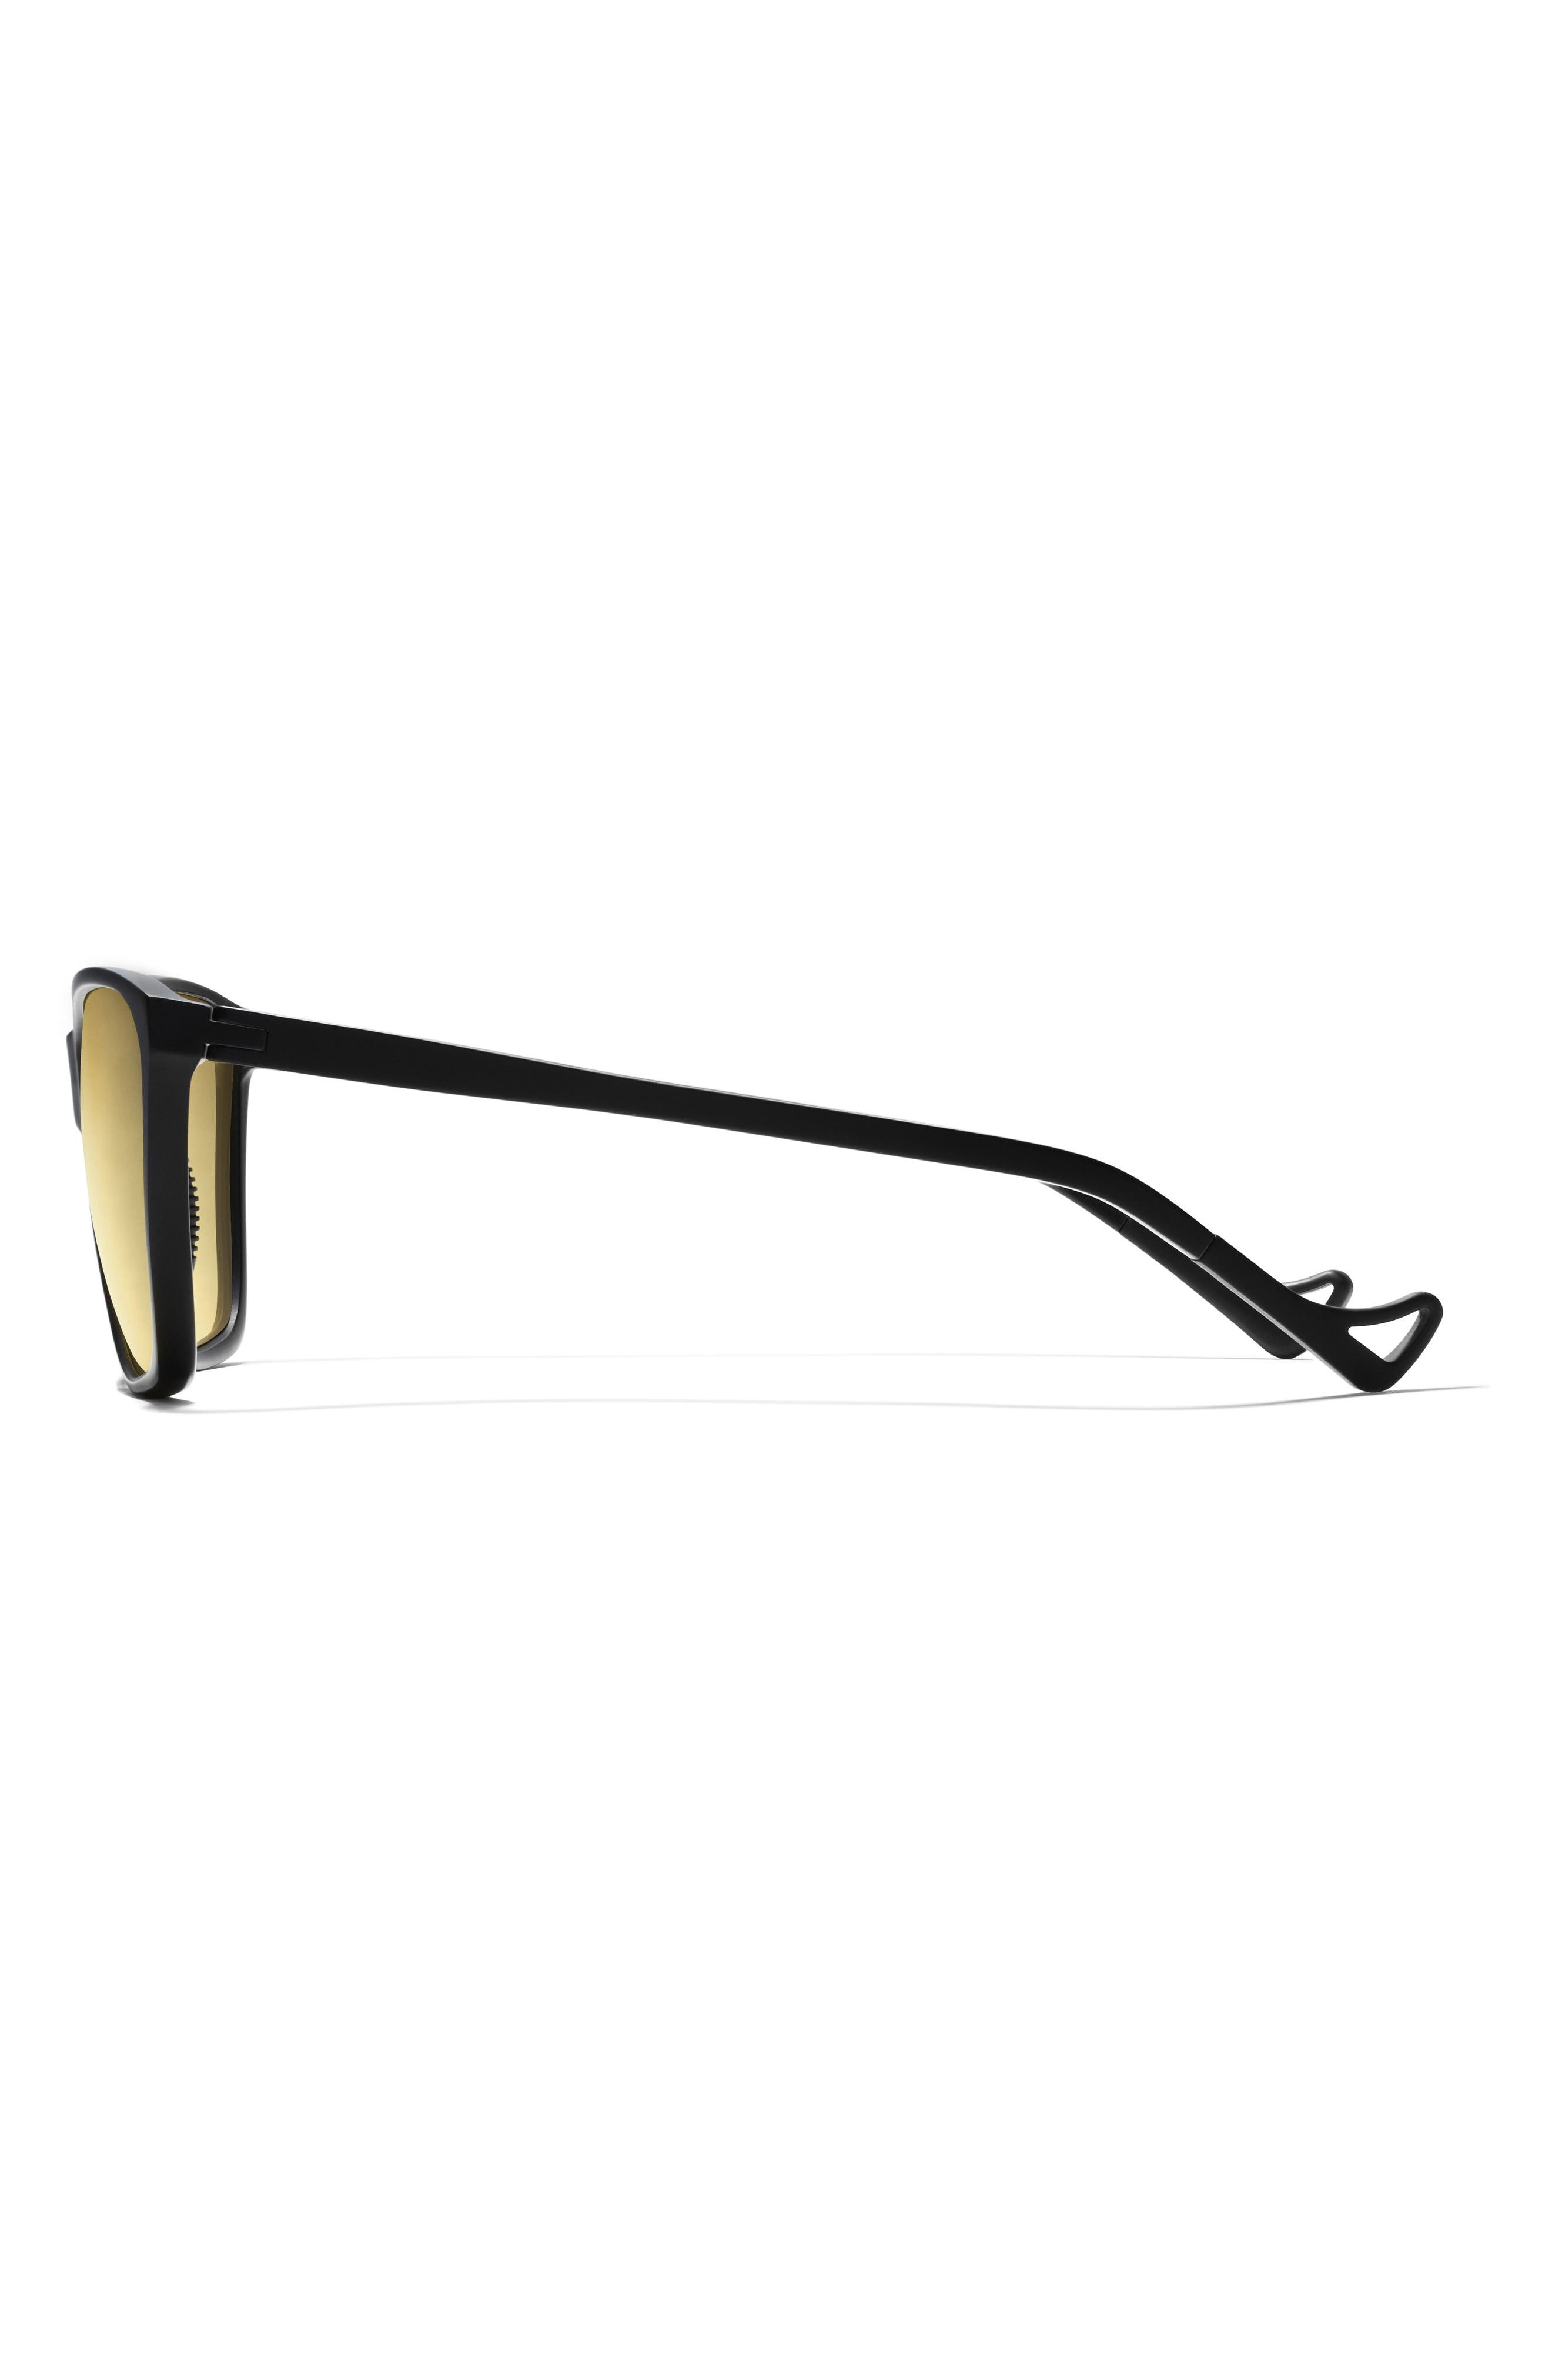 DISTRICT VISION Keiichi Standard 55Mm Sunglasses - Black/ Yellow